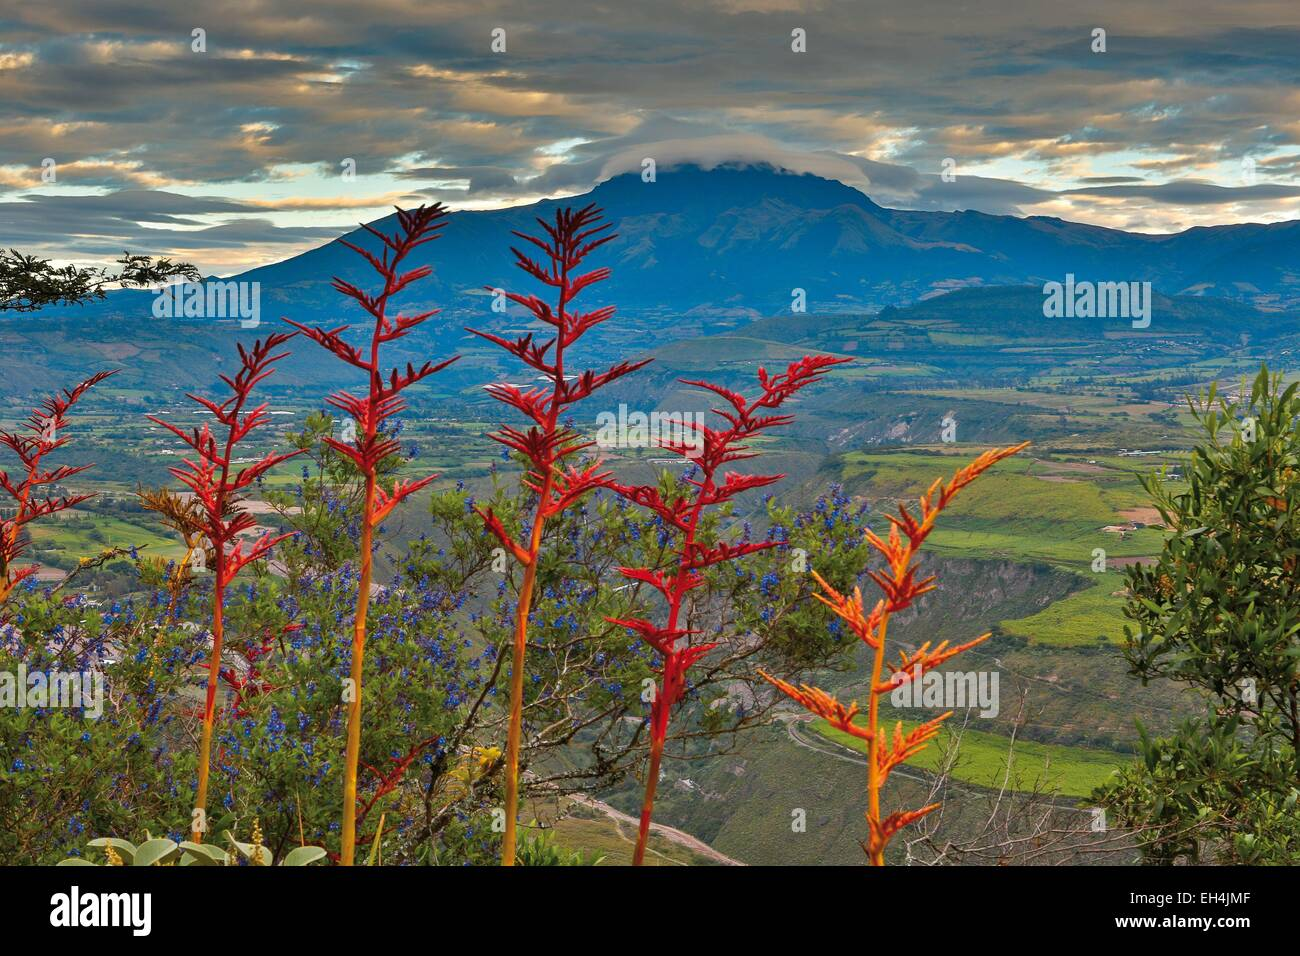 Ecuador, Ibarra, horizontal view of Cuicoxa volcano in the clouds with a leading wild red plants - Stock Image